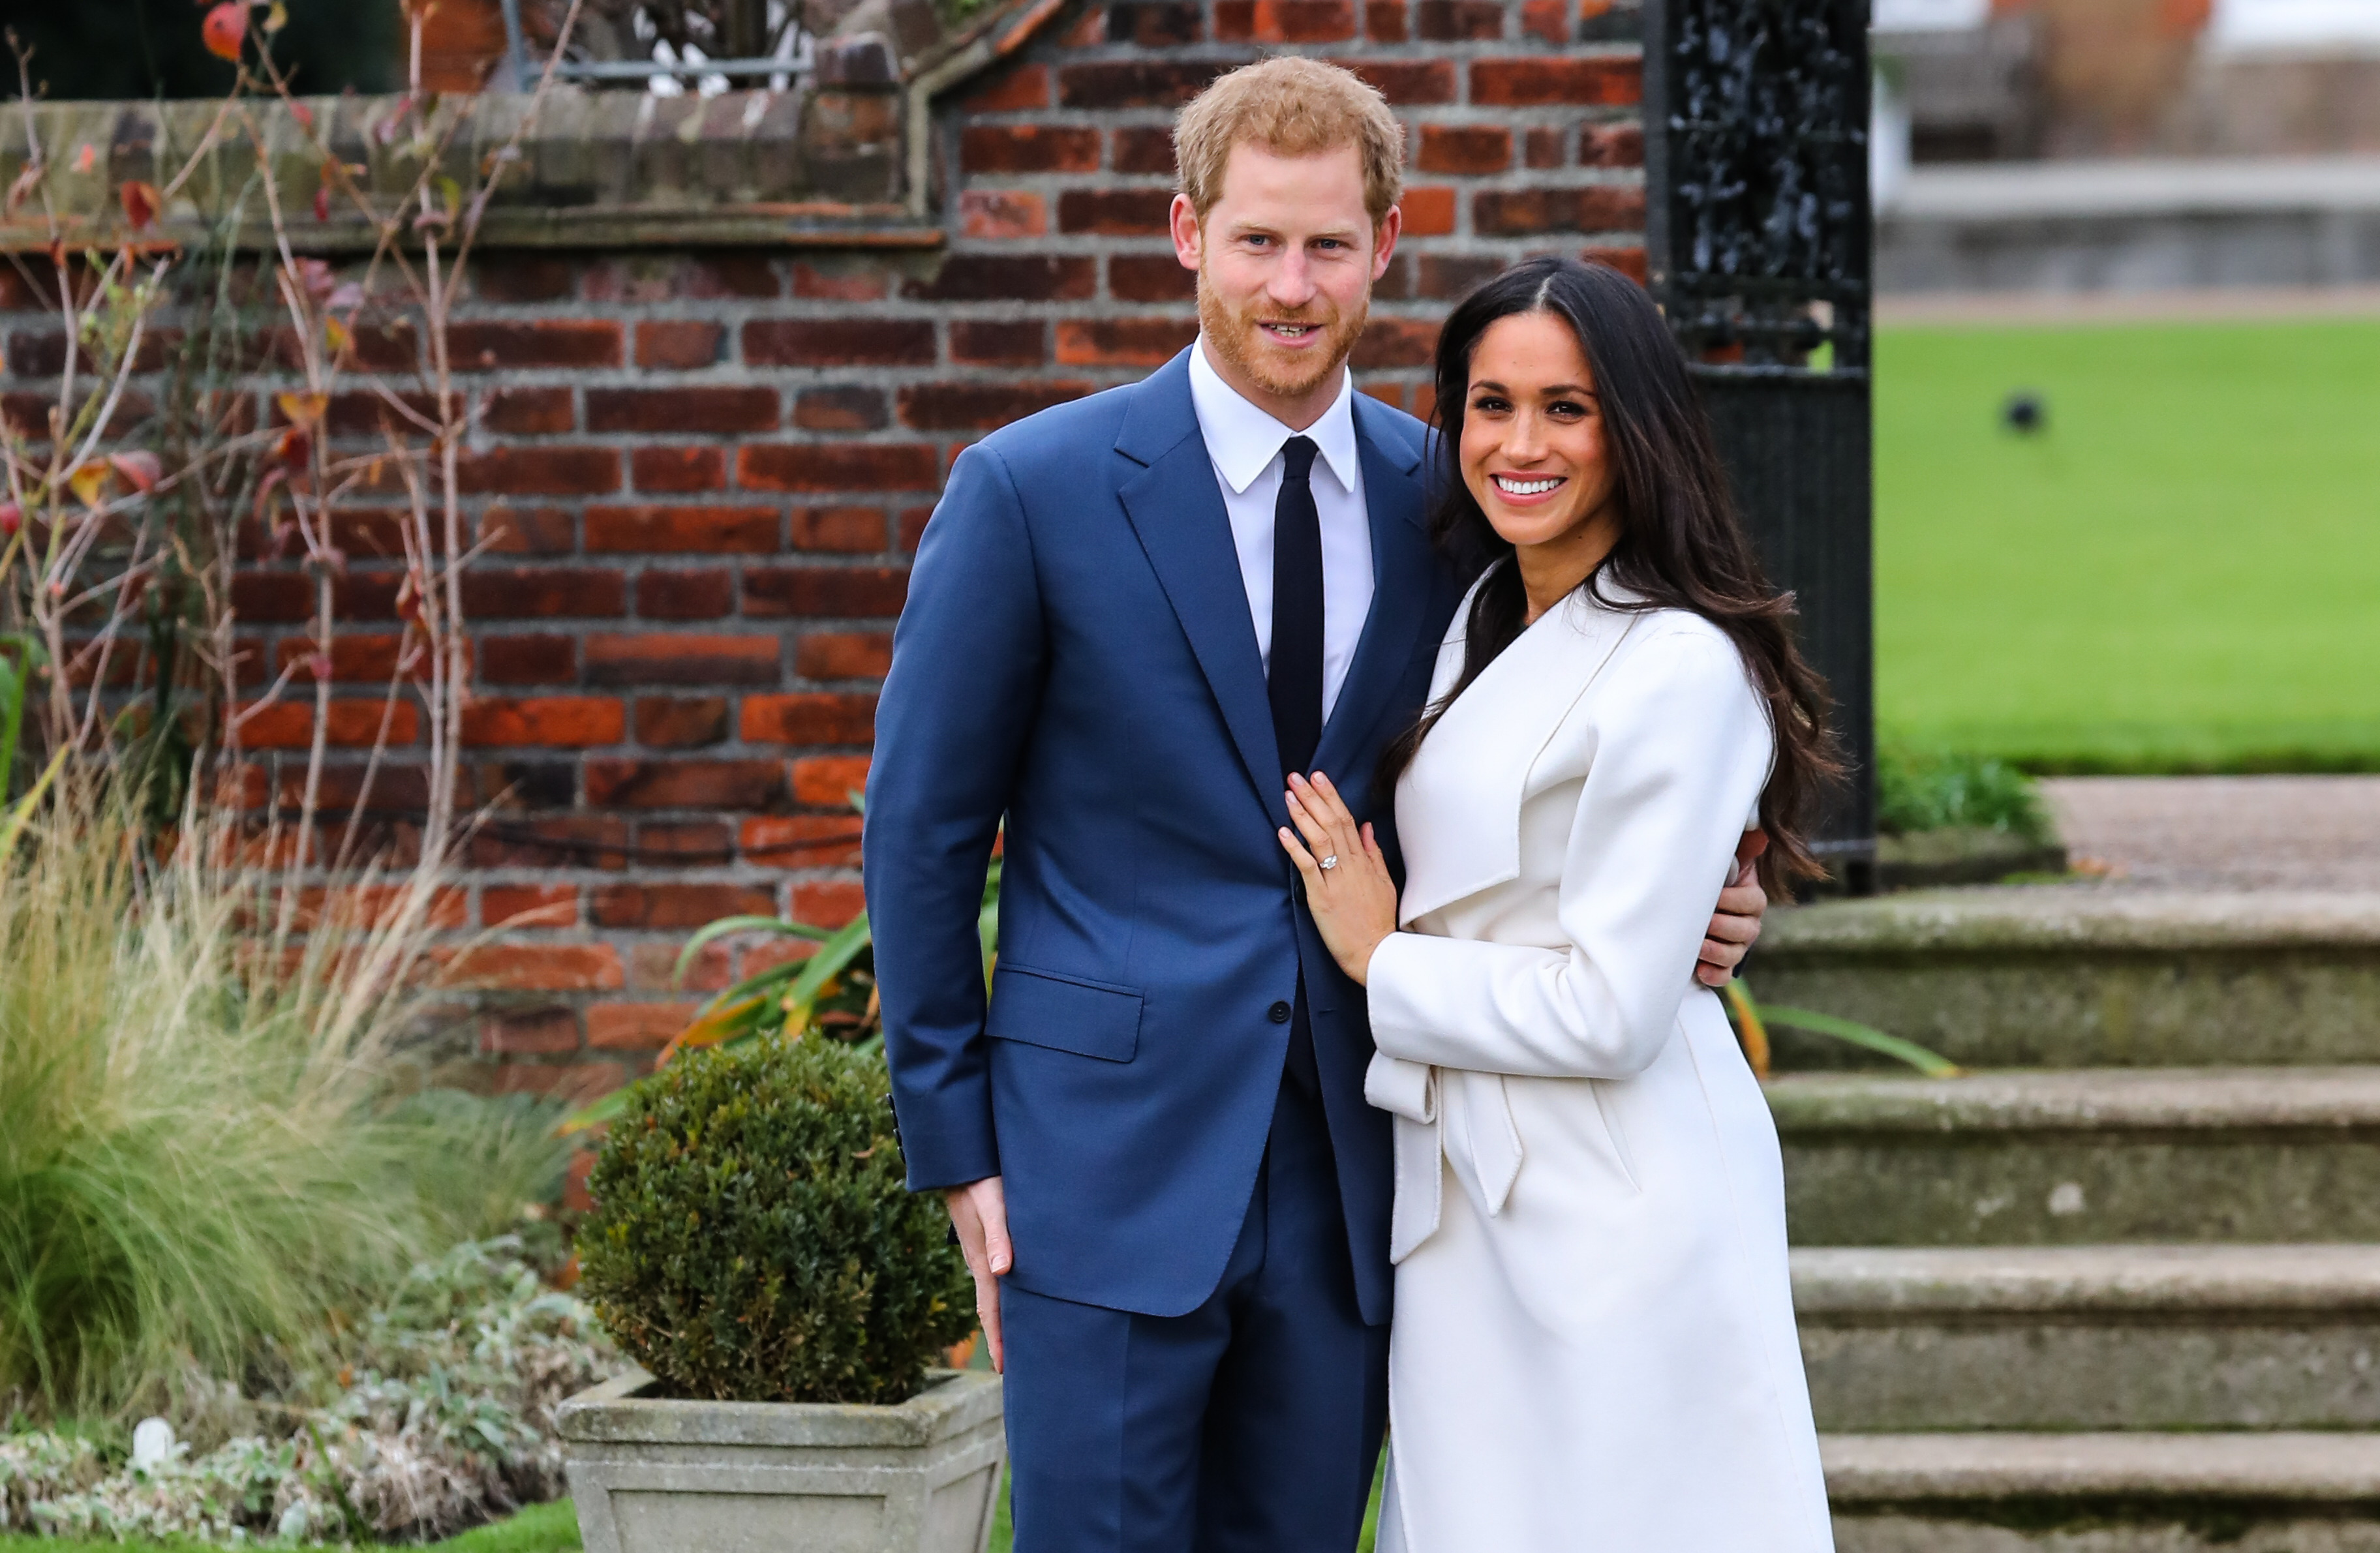 With less than 72 hours to go until one of the biggest social events of the season, Royal Wedding madness has officially descended upon the District! Of course the big question is what style Ms. Markle will opt for on the day of her official induction into the Royal Family? We asked a few local experts to weight in on what we can expect beauty wise at the wedding , and here's what they said. (Imagee:John Rainford/WENN.com)